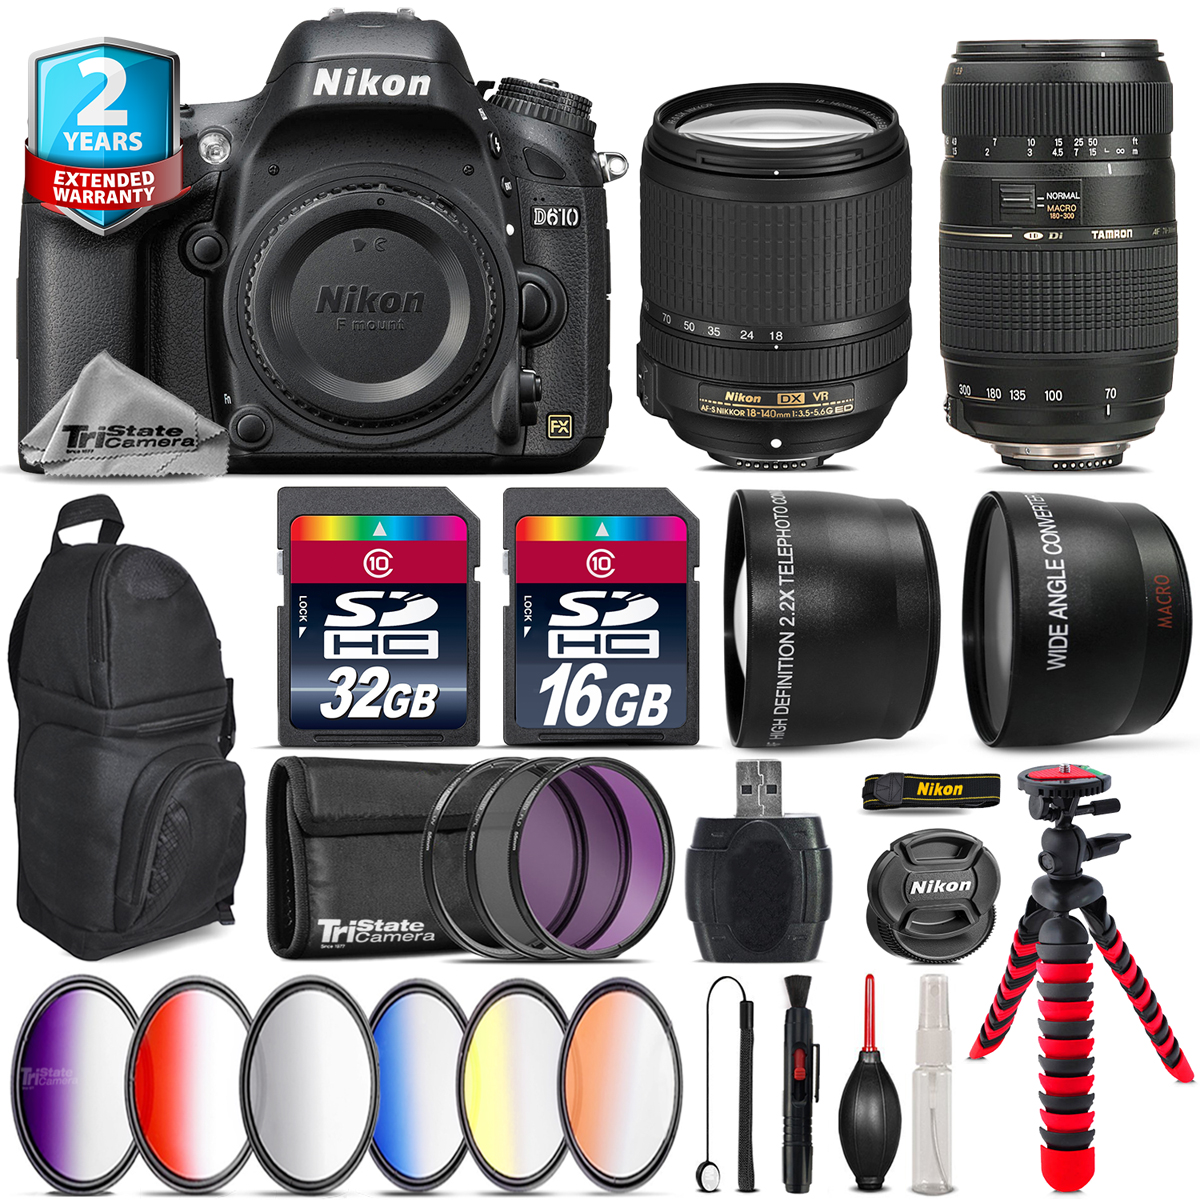 Nikon D610 DSLR Camera + AFS 18-140mm VR + Tamron 70-300mm + Backpack 48GB Kit by Tri StateCamera